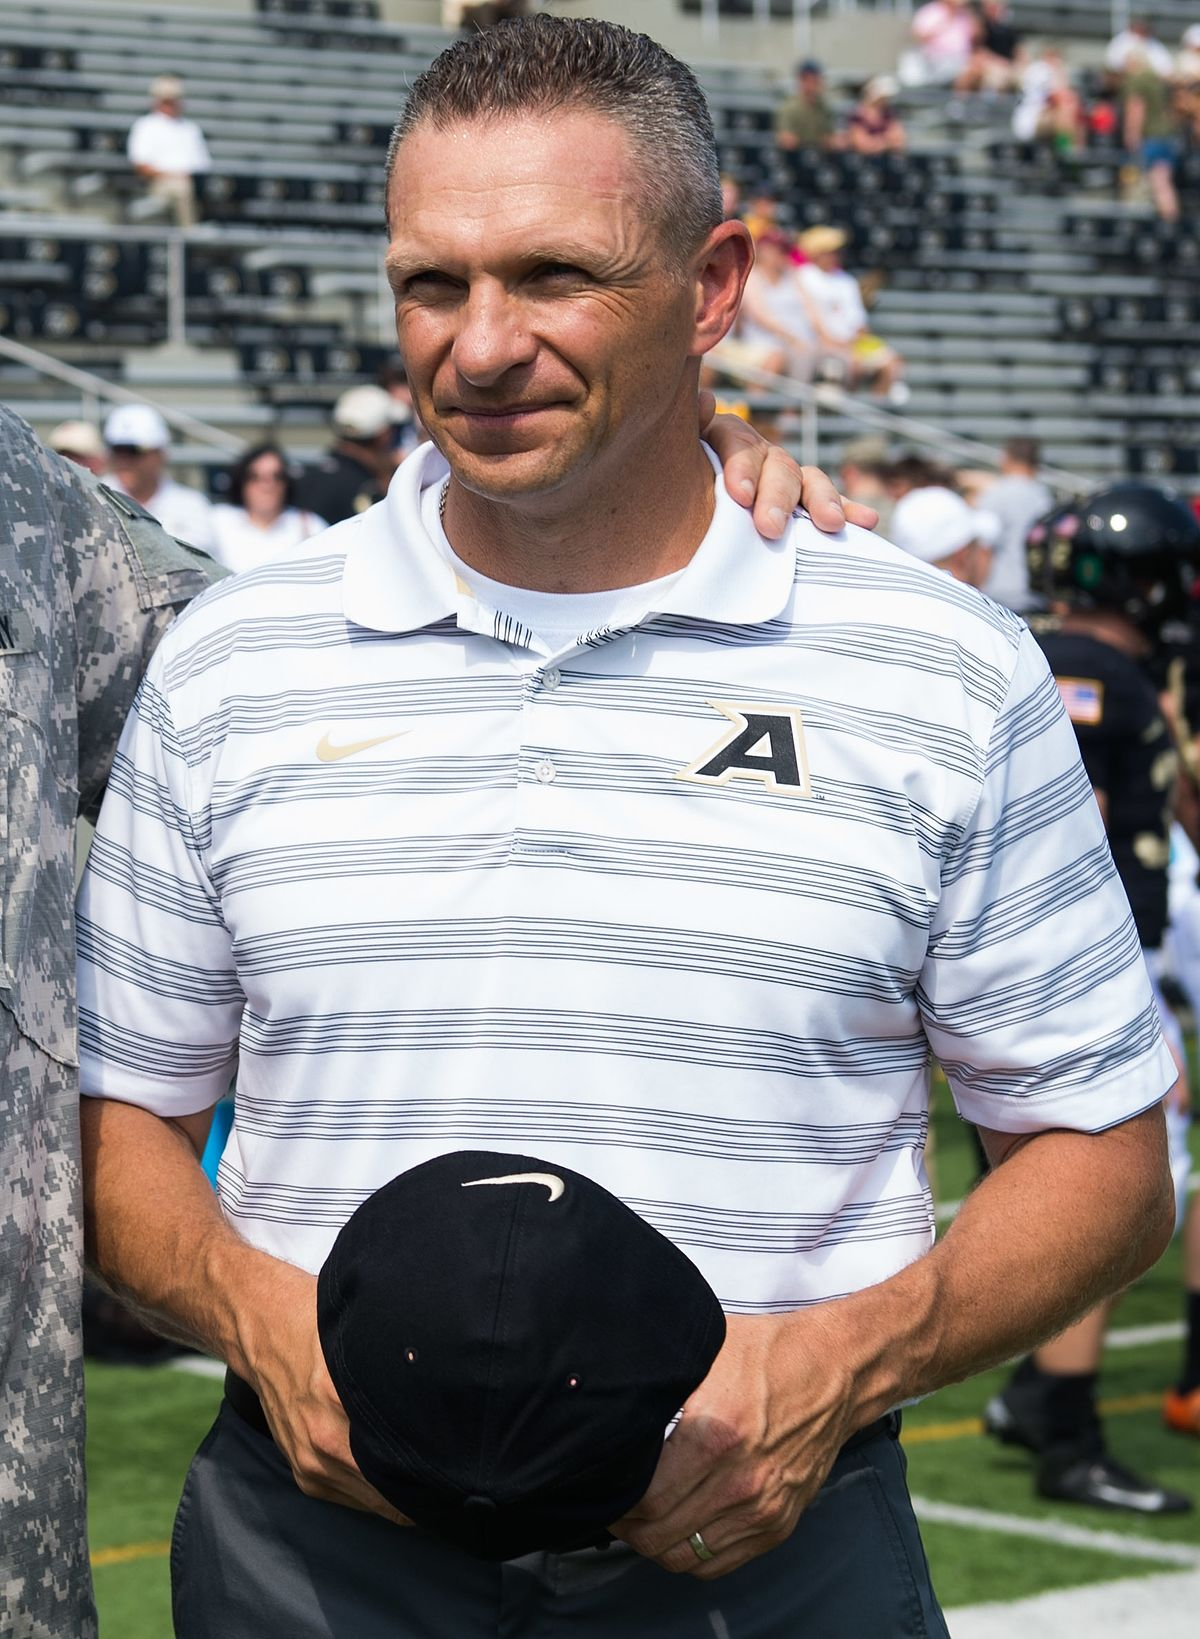 Monken Wikipedia - Jeff